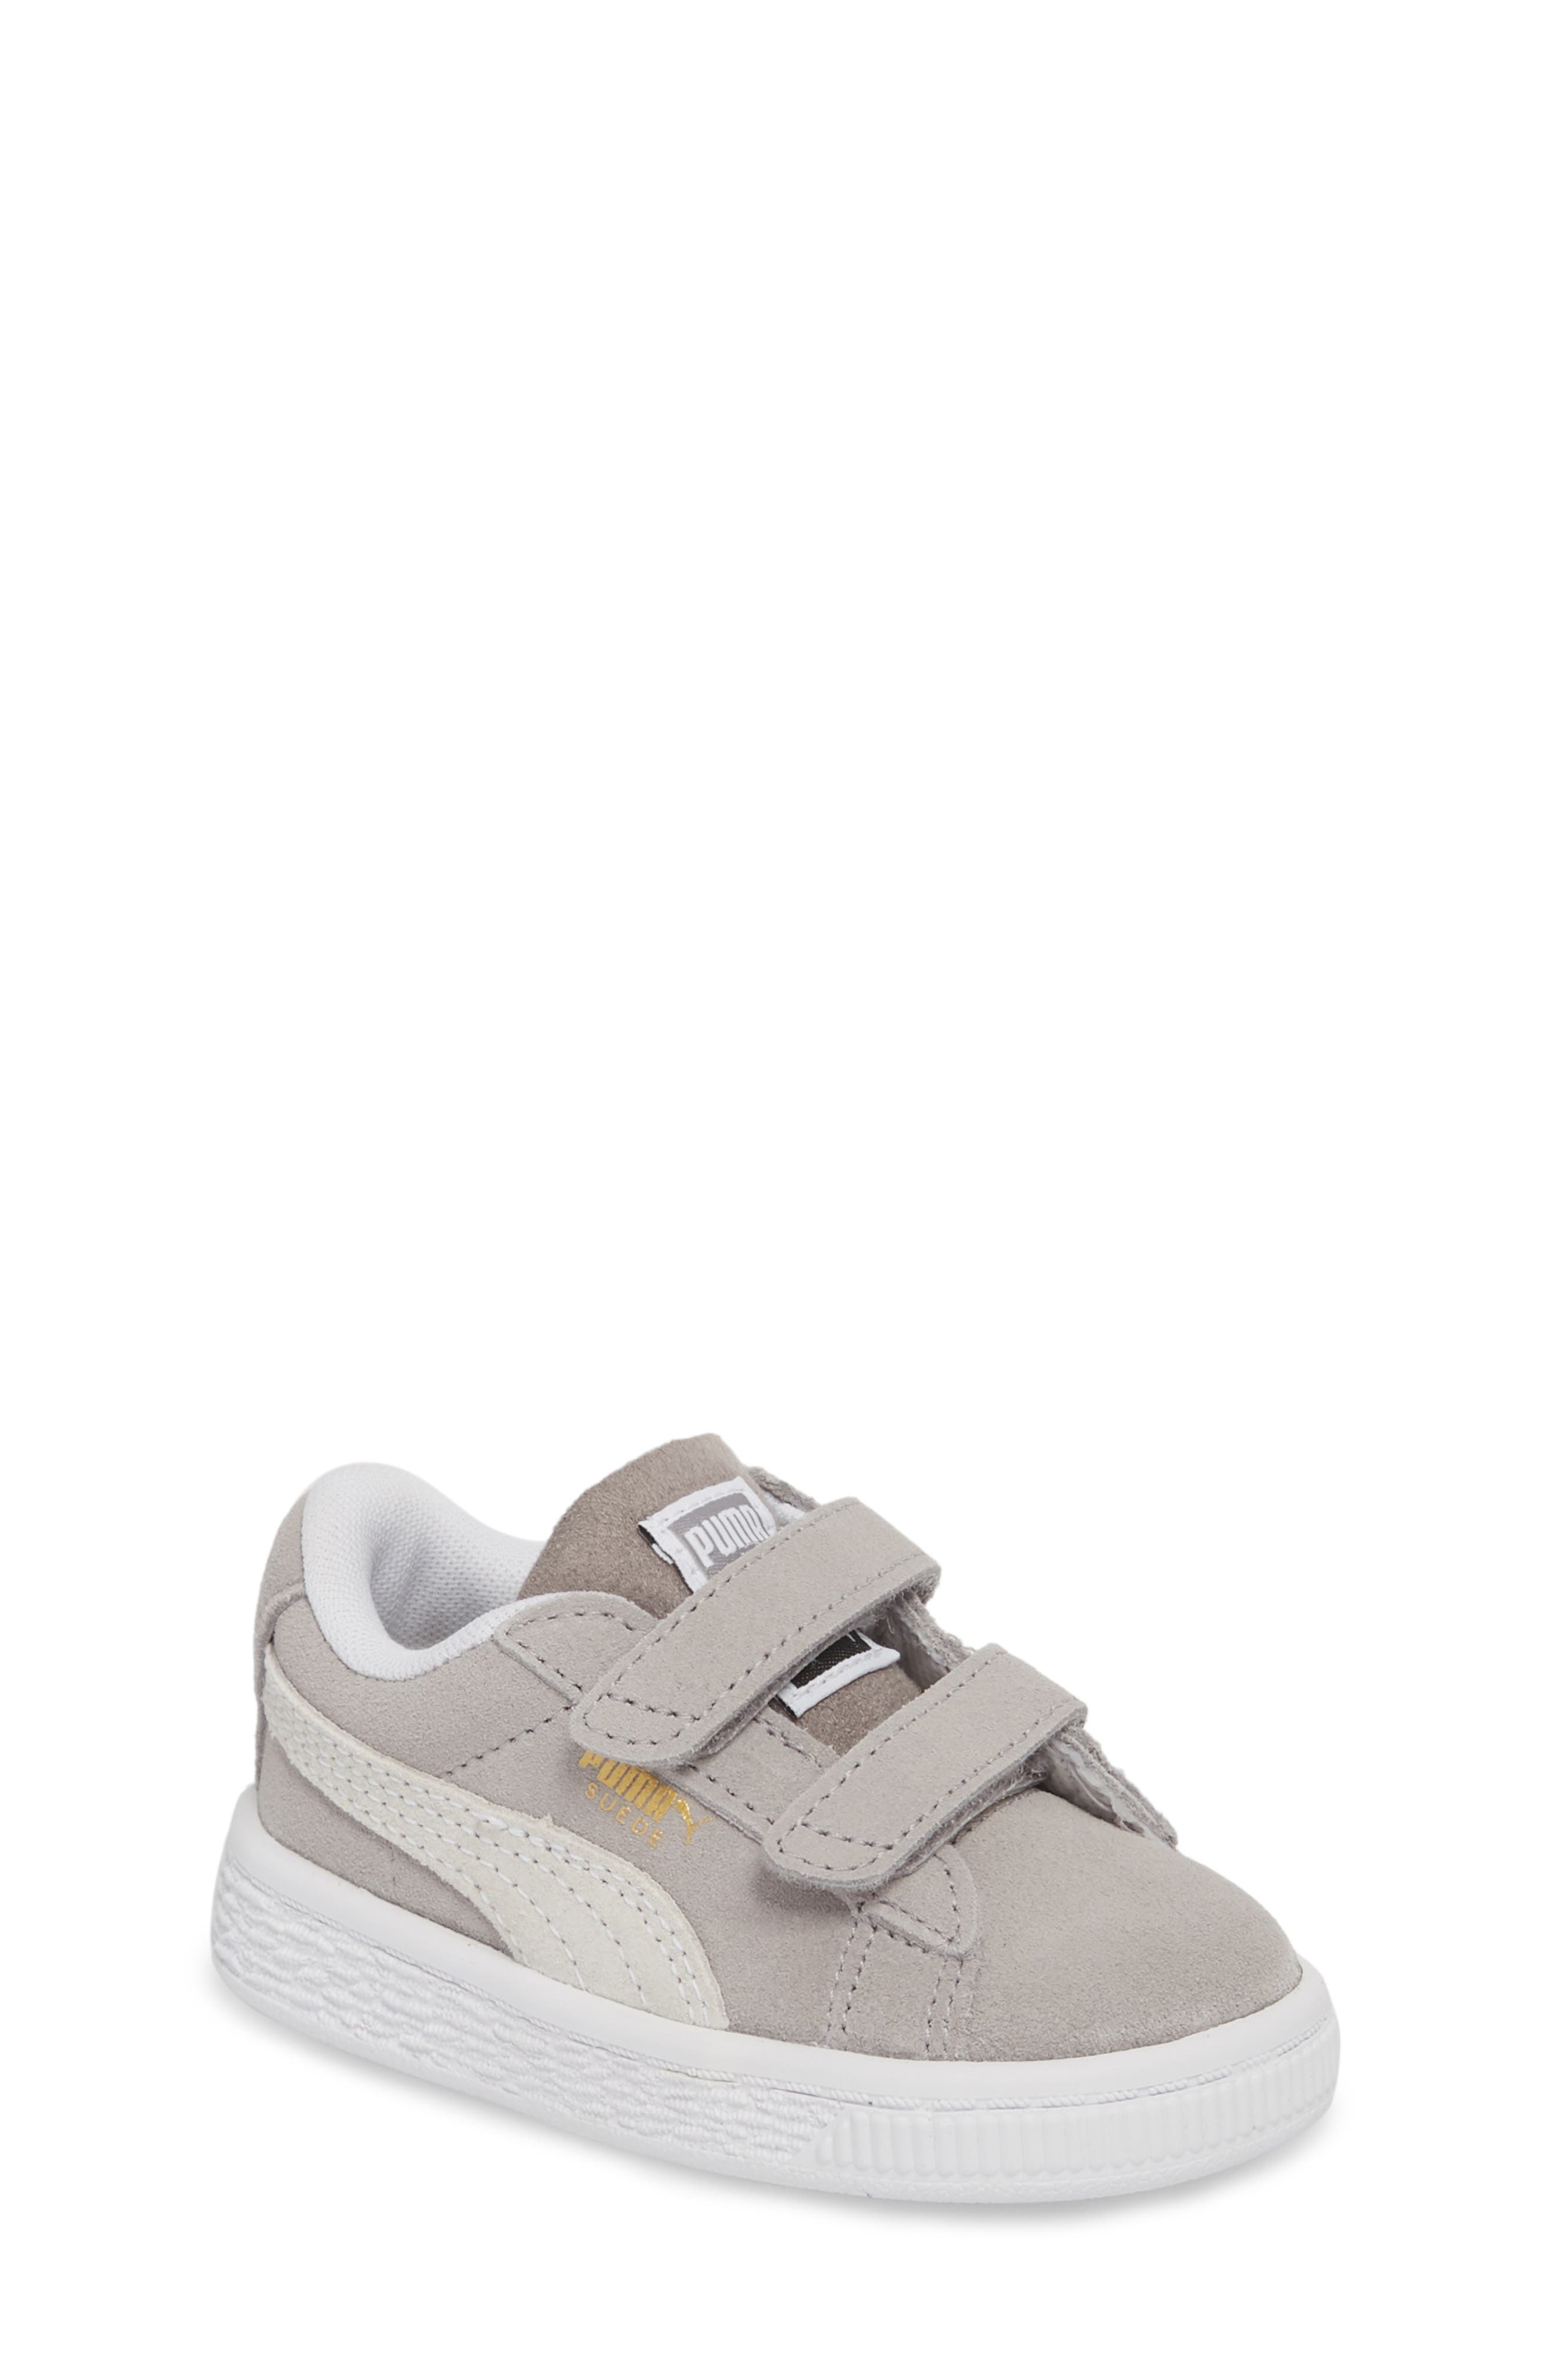 Suede Classic Sneaker,                         Main,                         color, 250